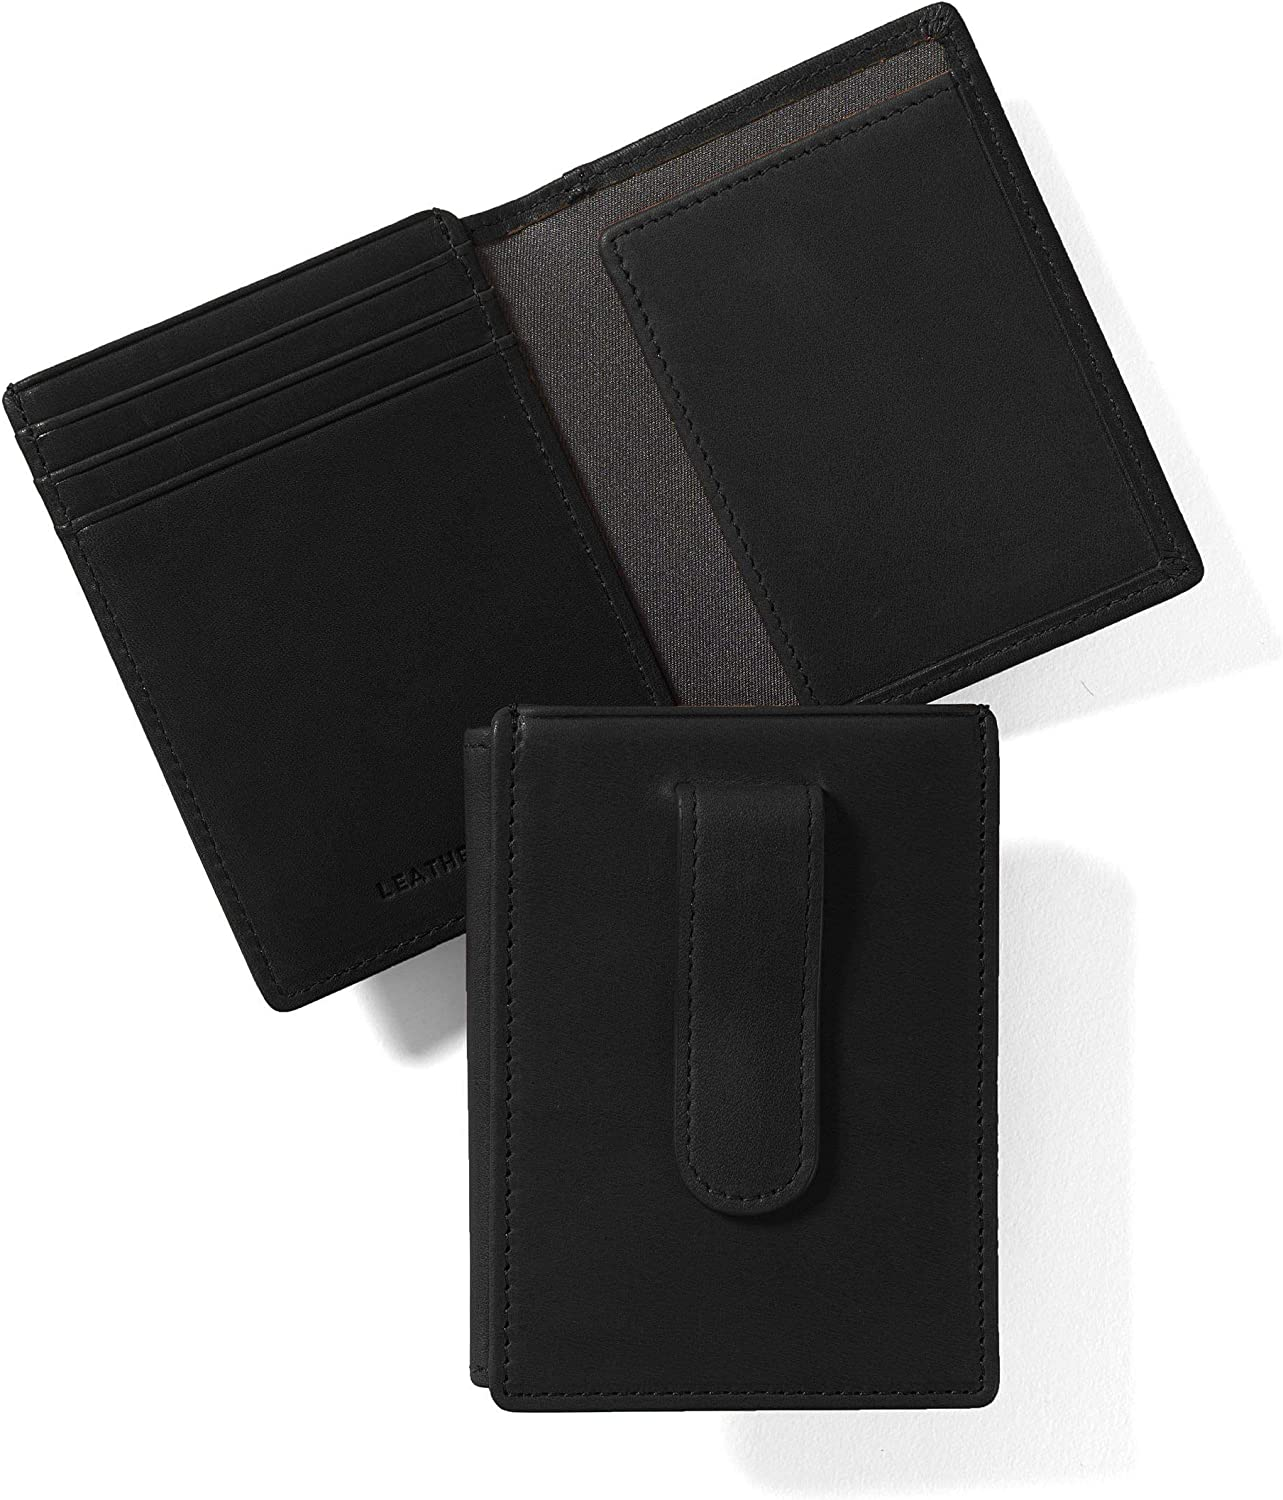 Leatherology Black Oil Men's Money with Max 52% OFF Clip Card Holder Max 79% OFF Wallet